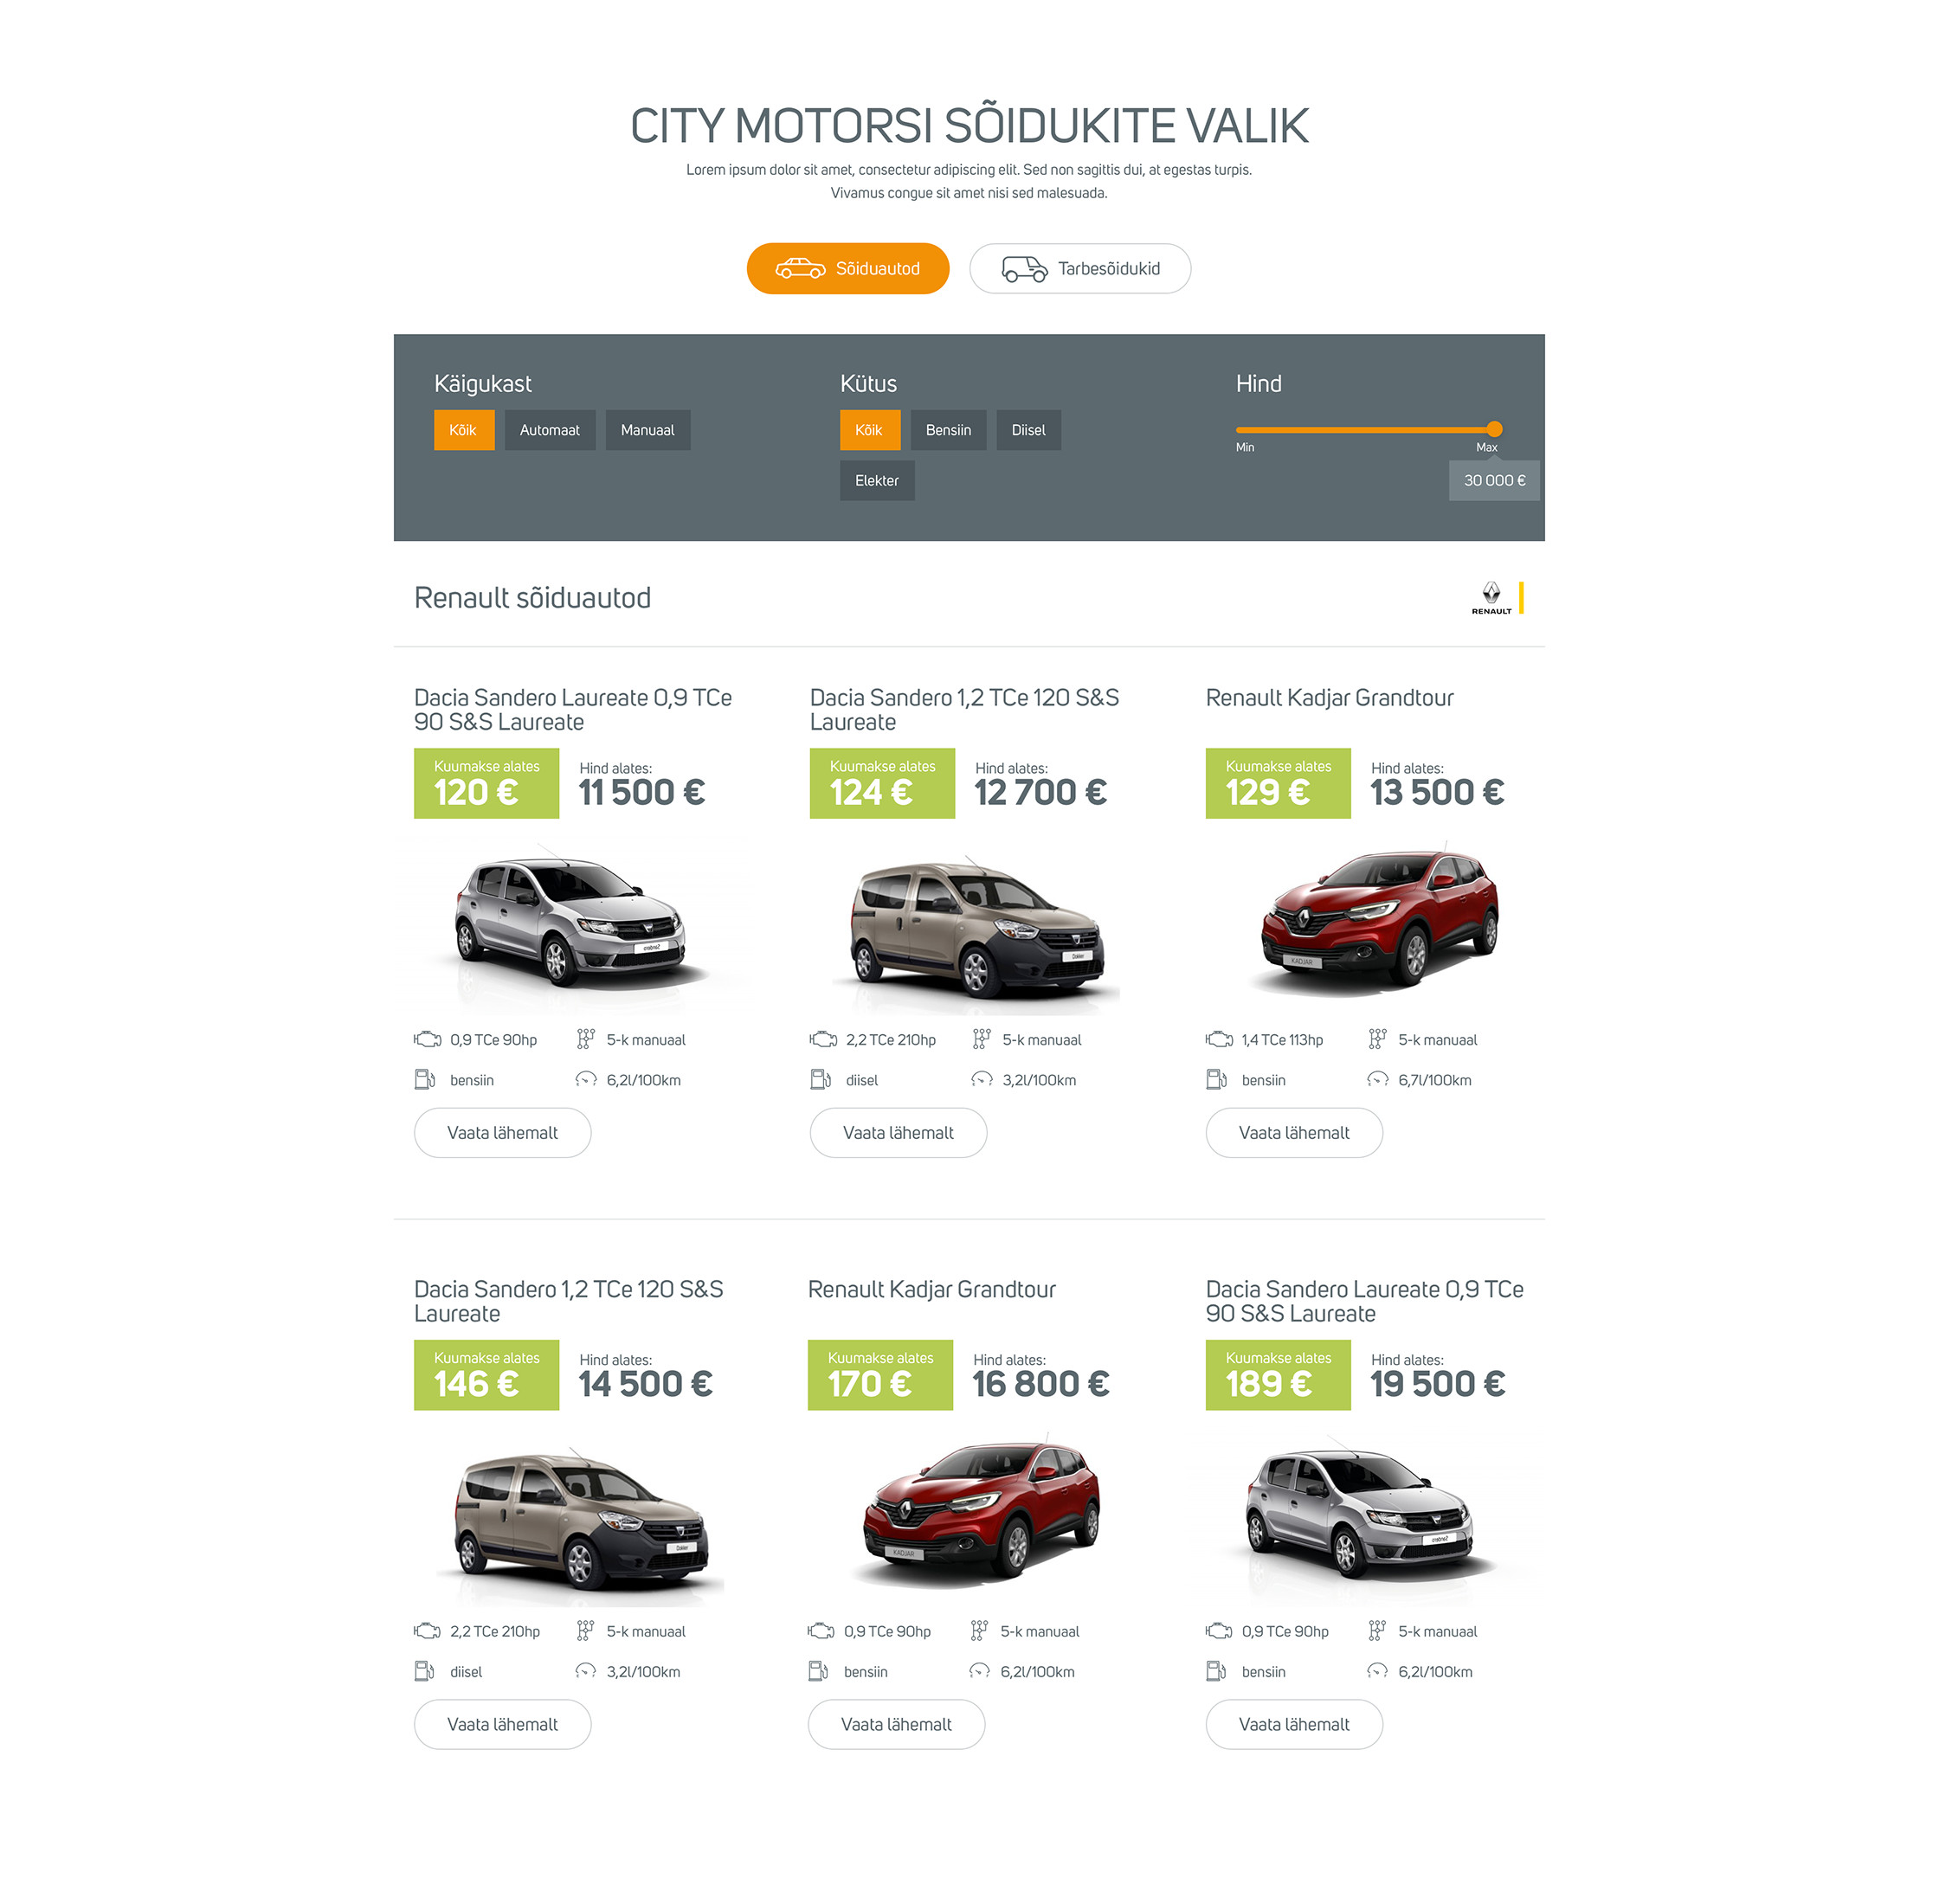 City Motors UI/UX design